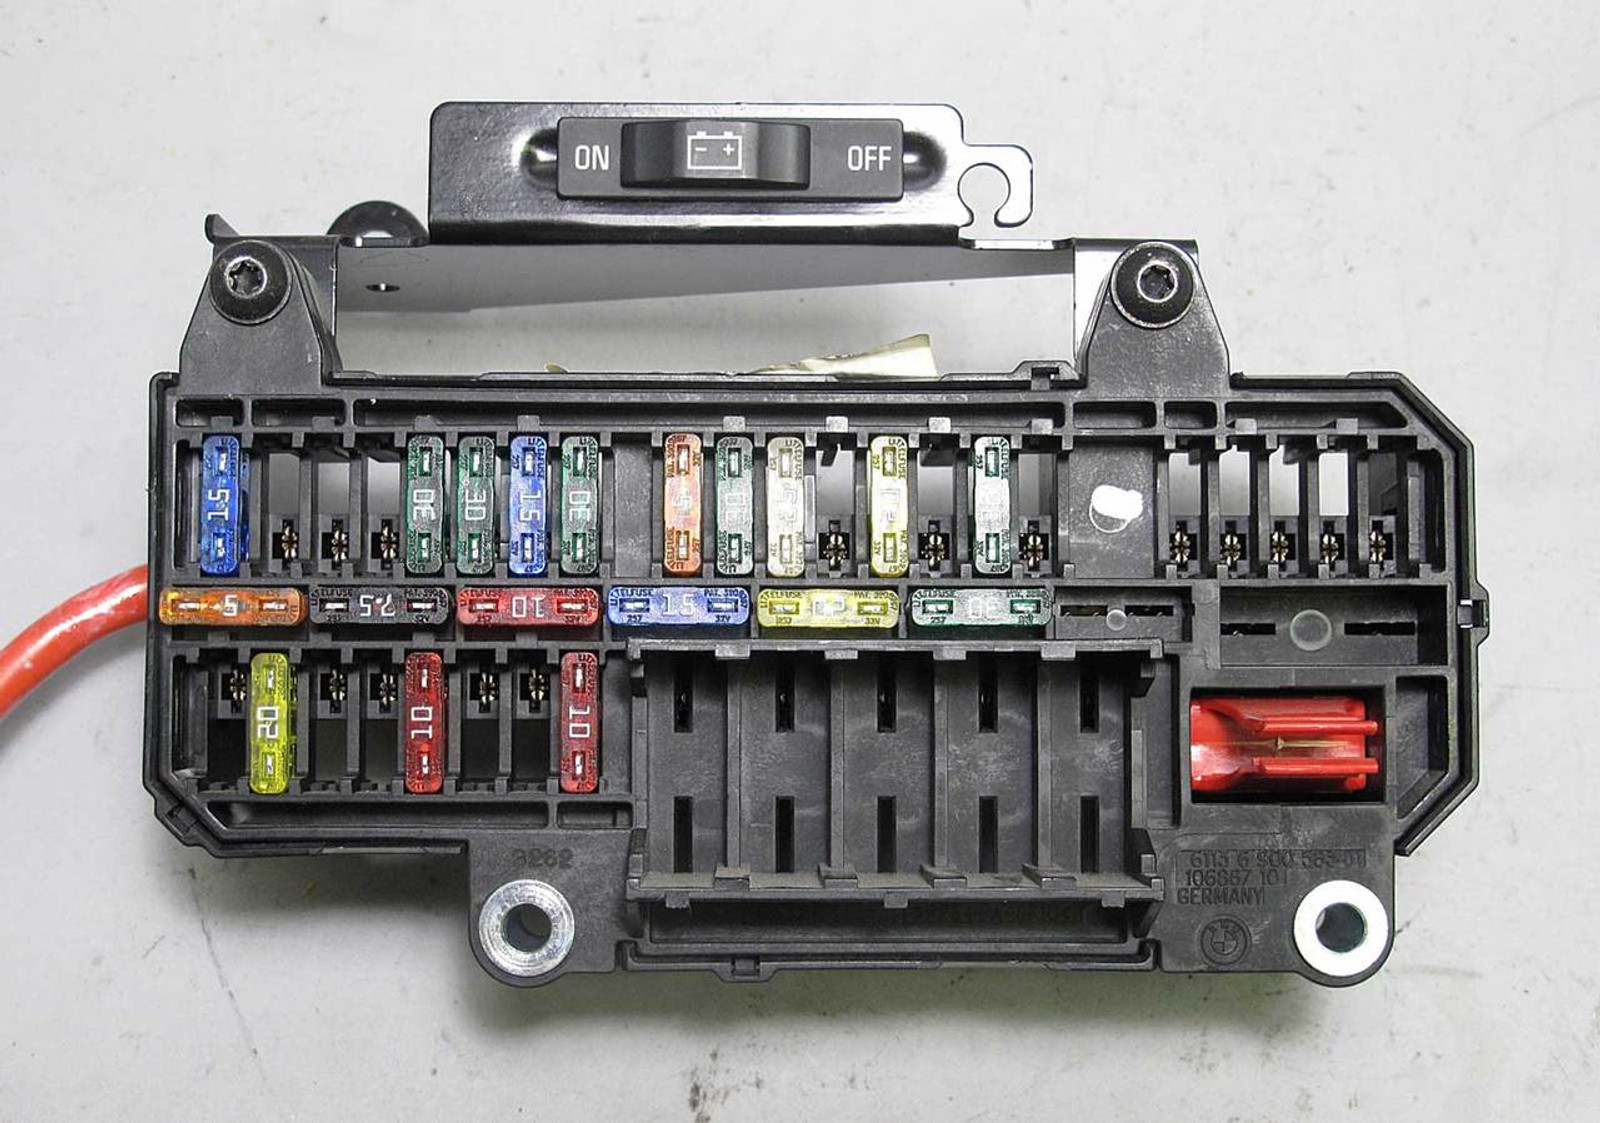 Bmw E65 E66 7 Series Factory Trunk Mount Fuse Box Panel 2002 2008